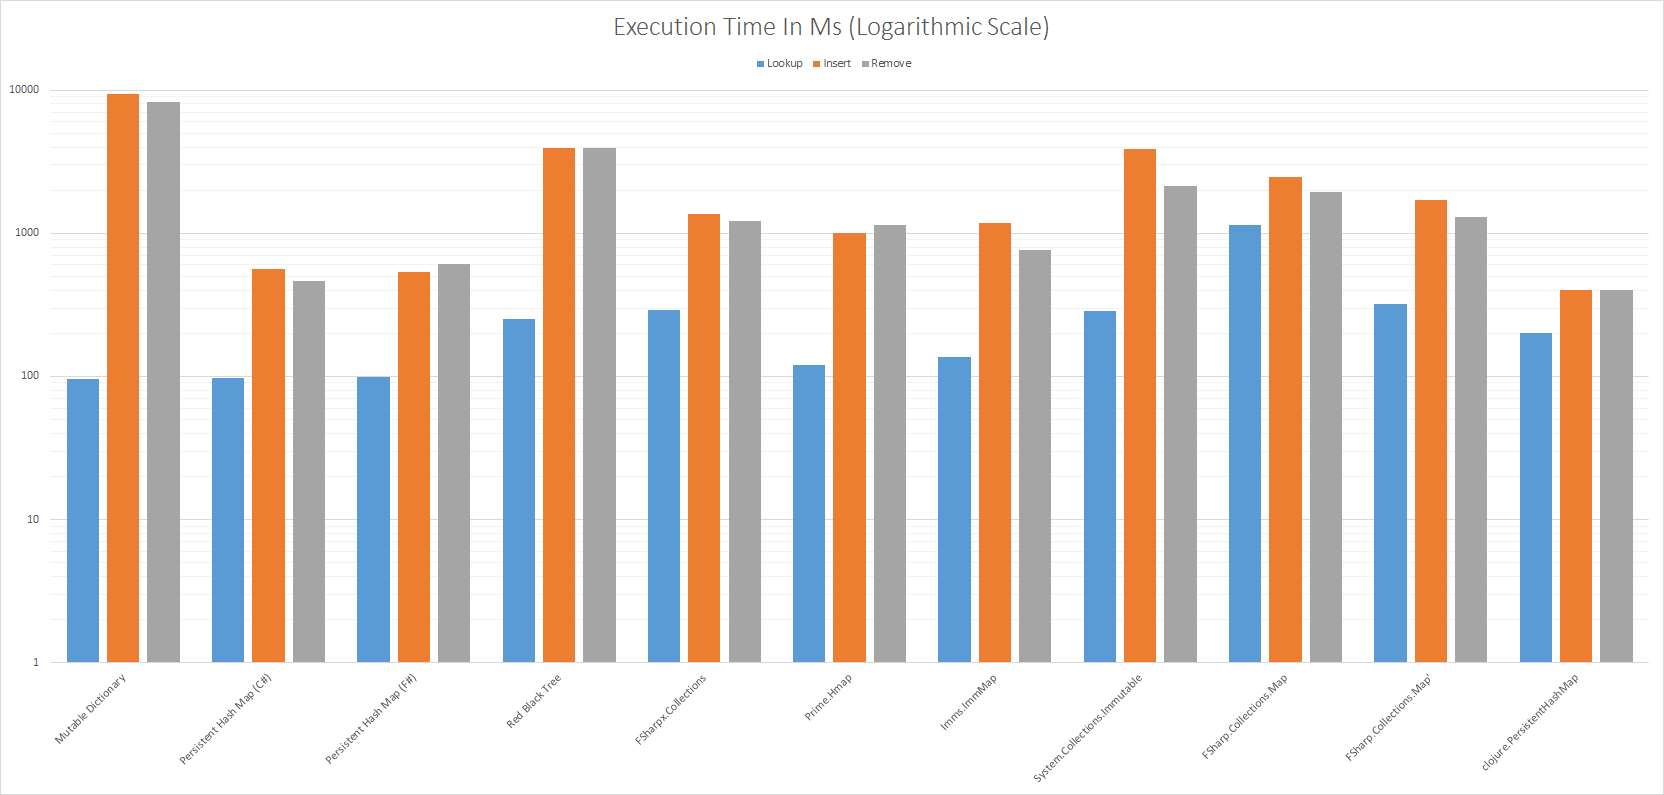 Execution Time In Ms (Logarithmic Scale)